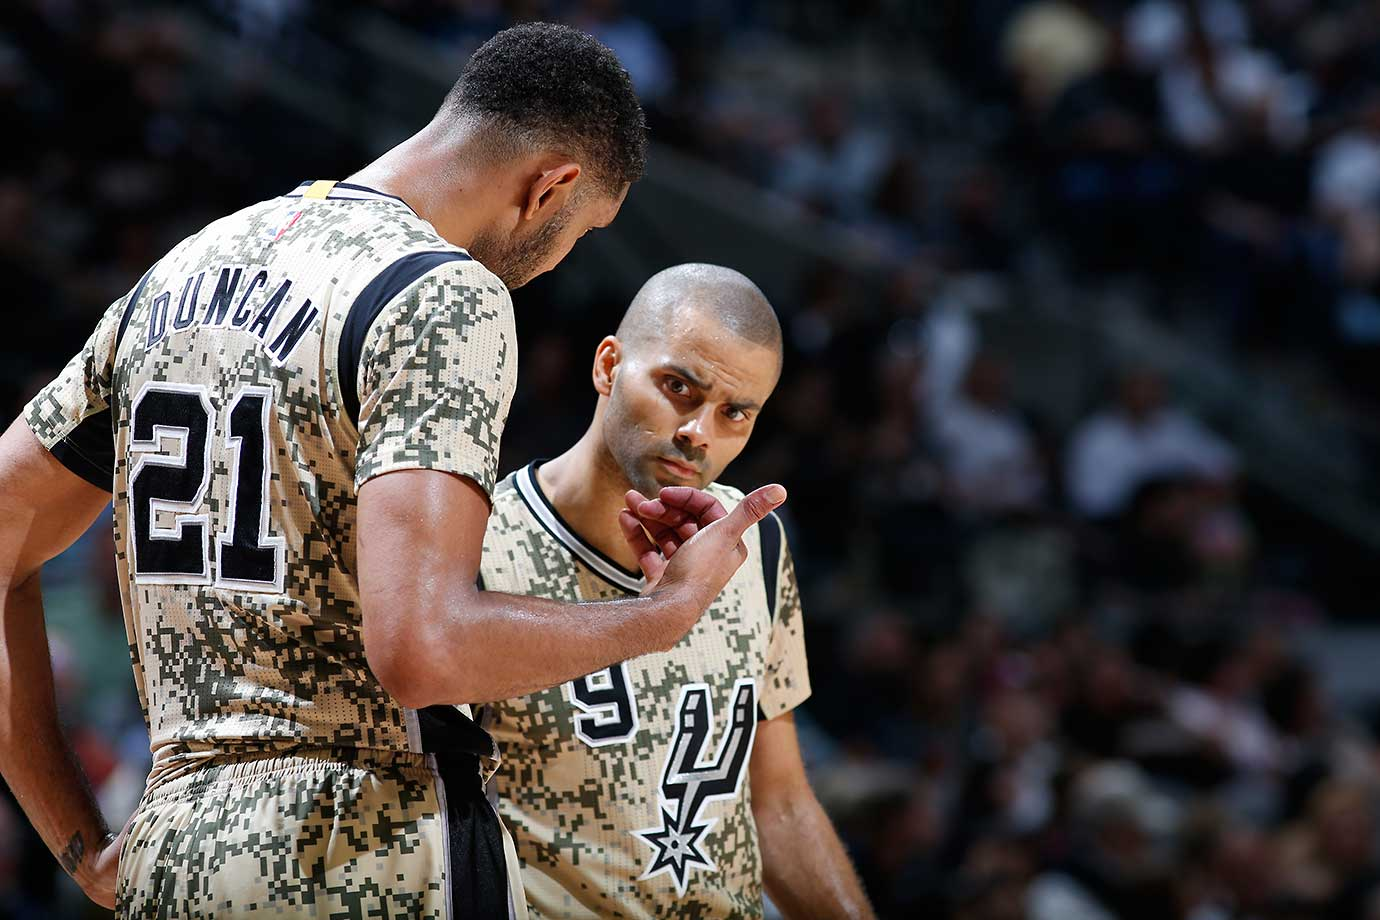 Tim Duncan and Tony Parker conversing in their camouflage uniforms during a game against the Miami Heat.